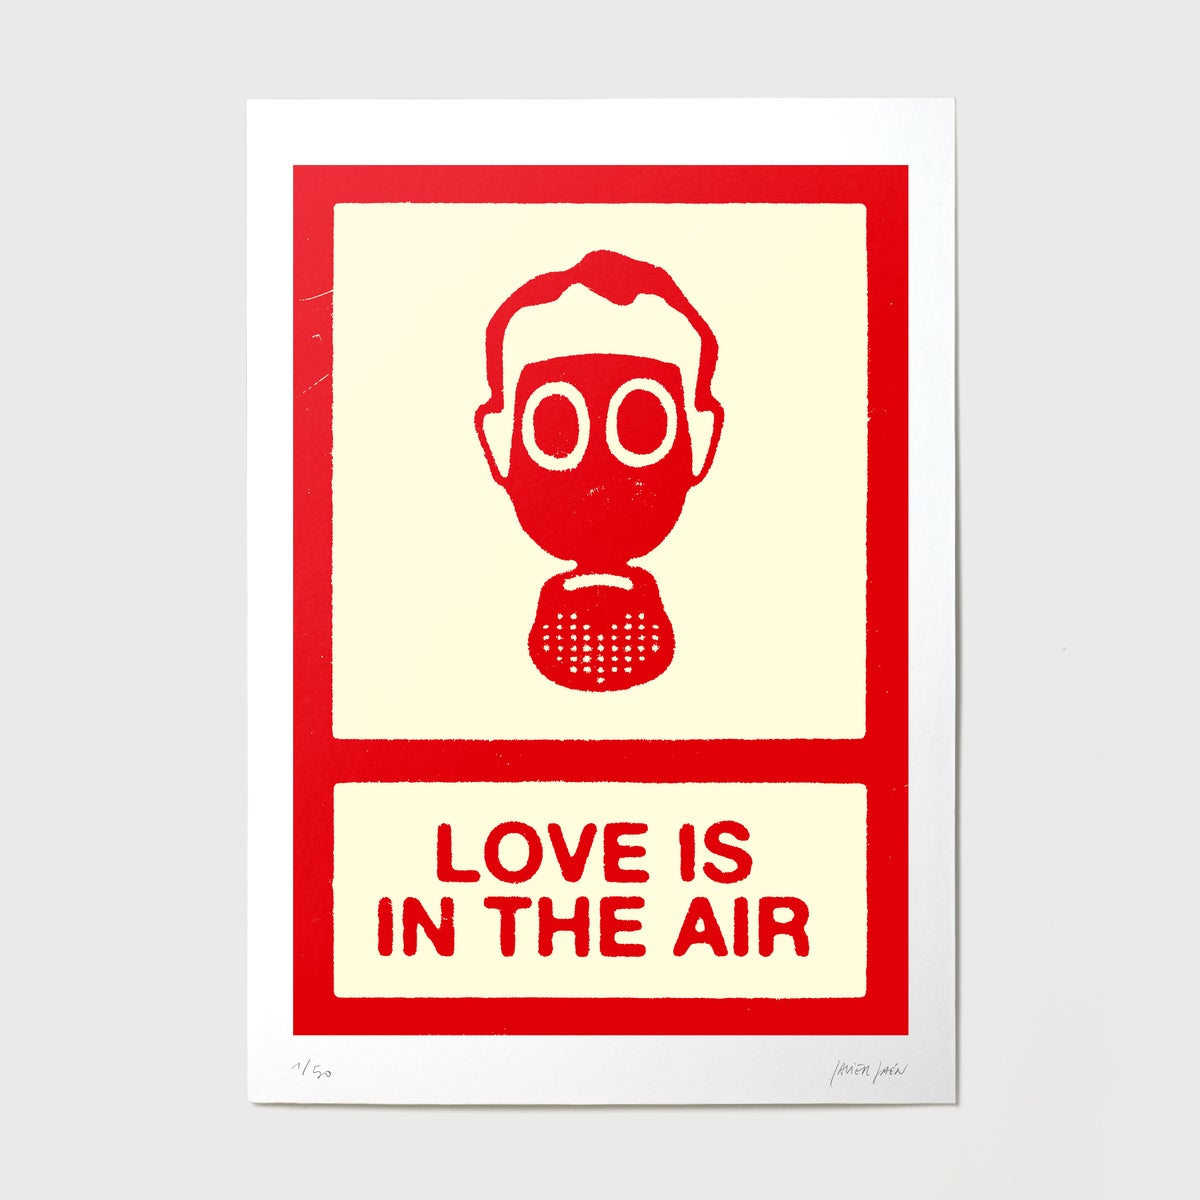 Image of Love is in the air